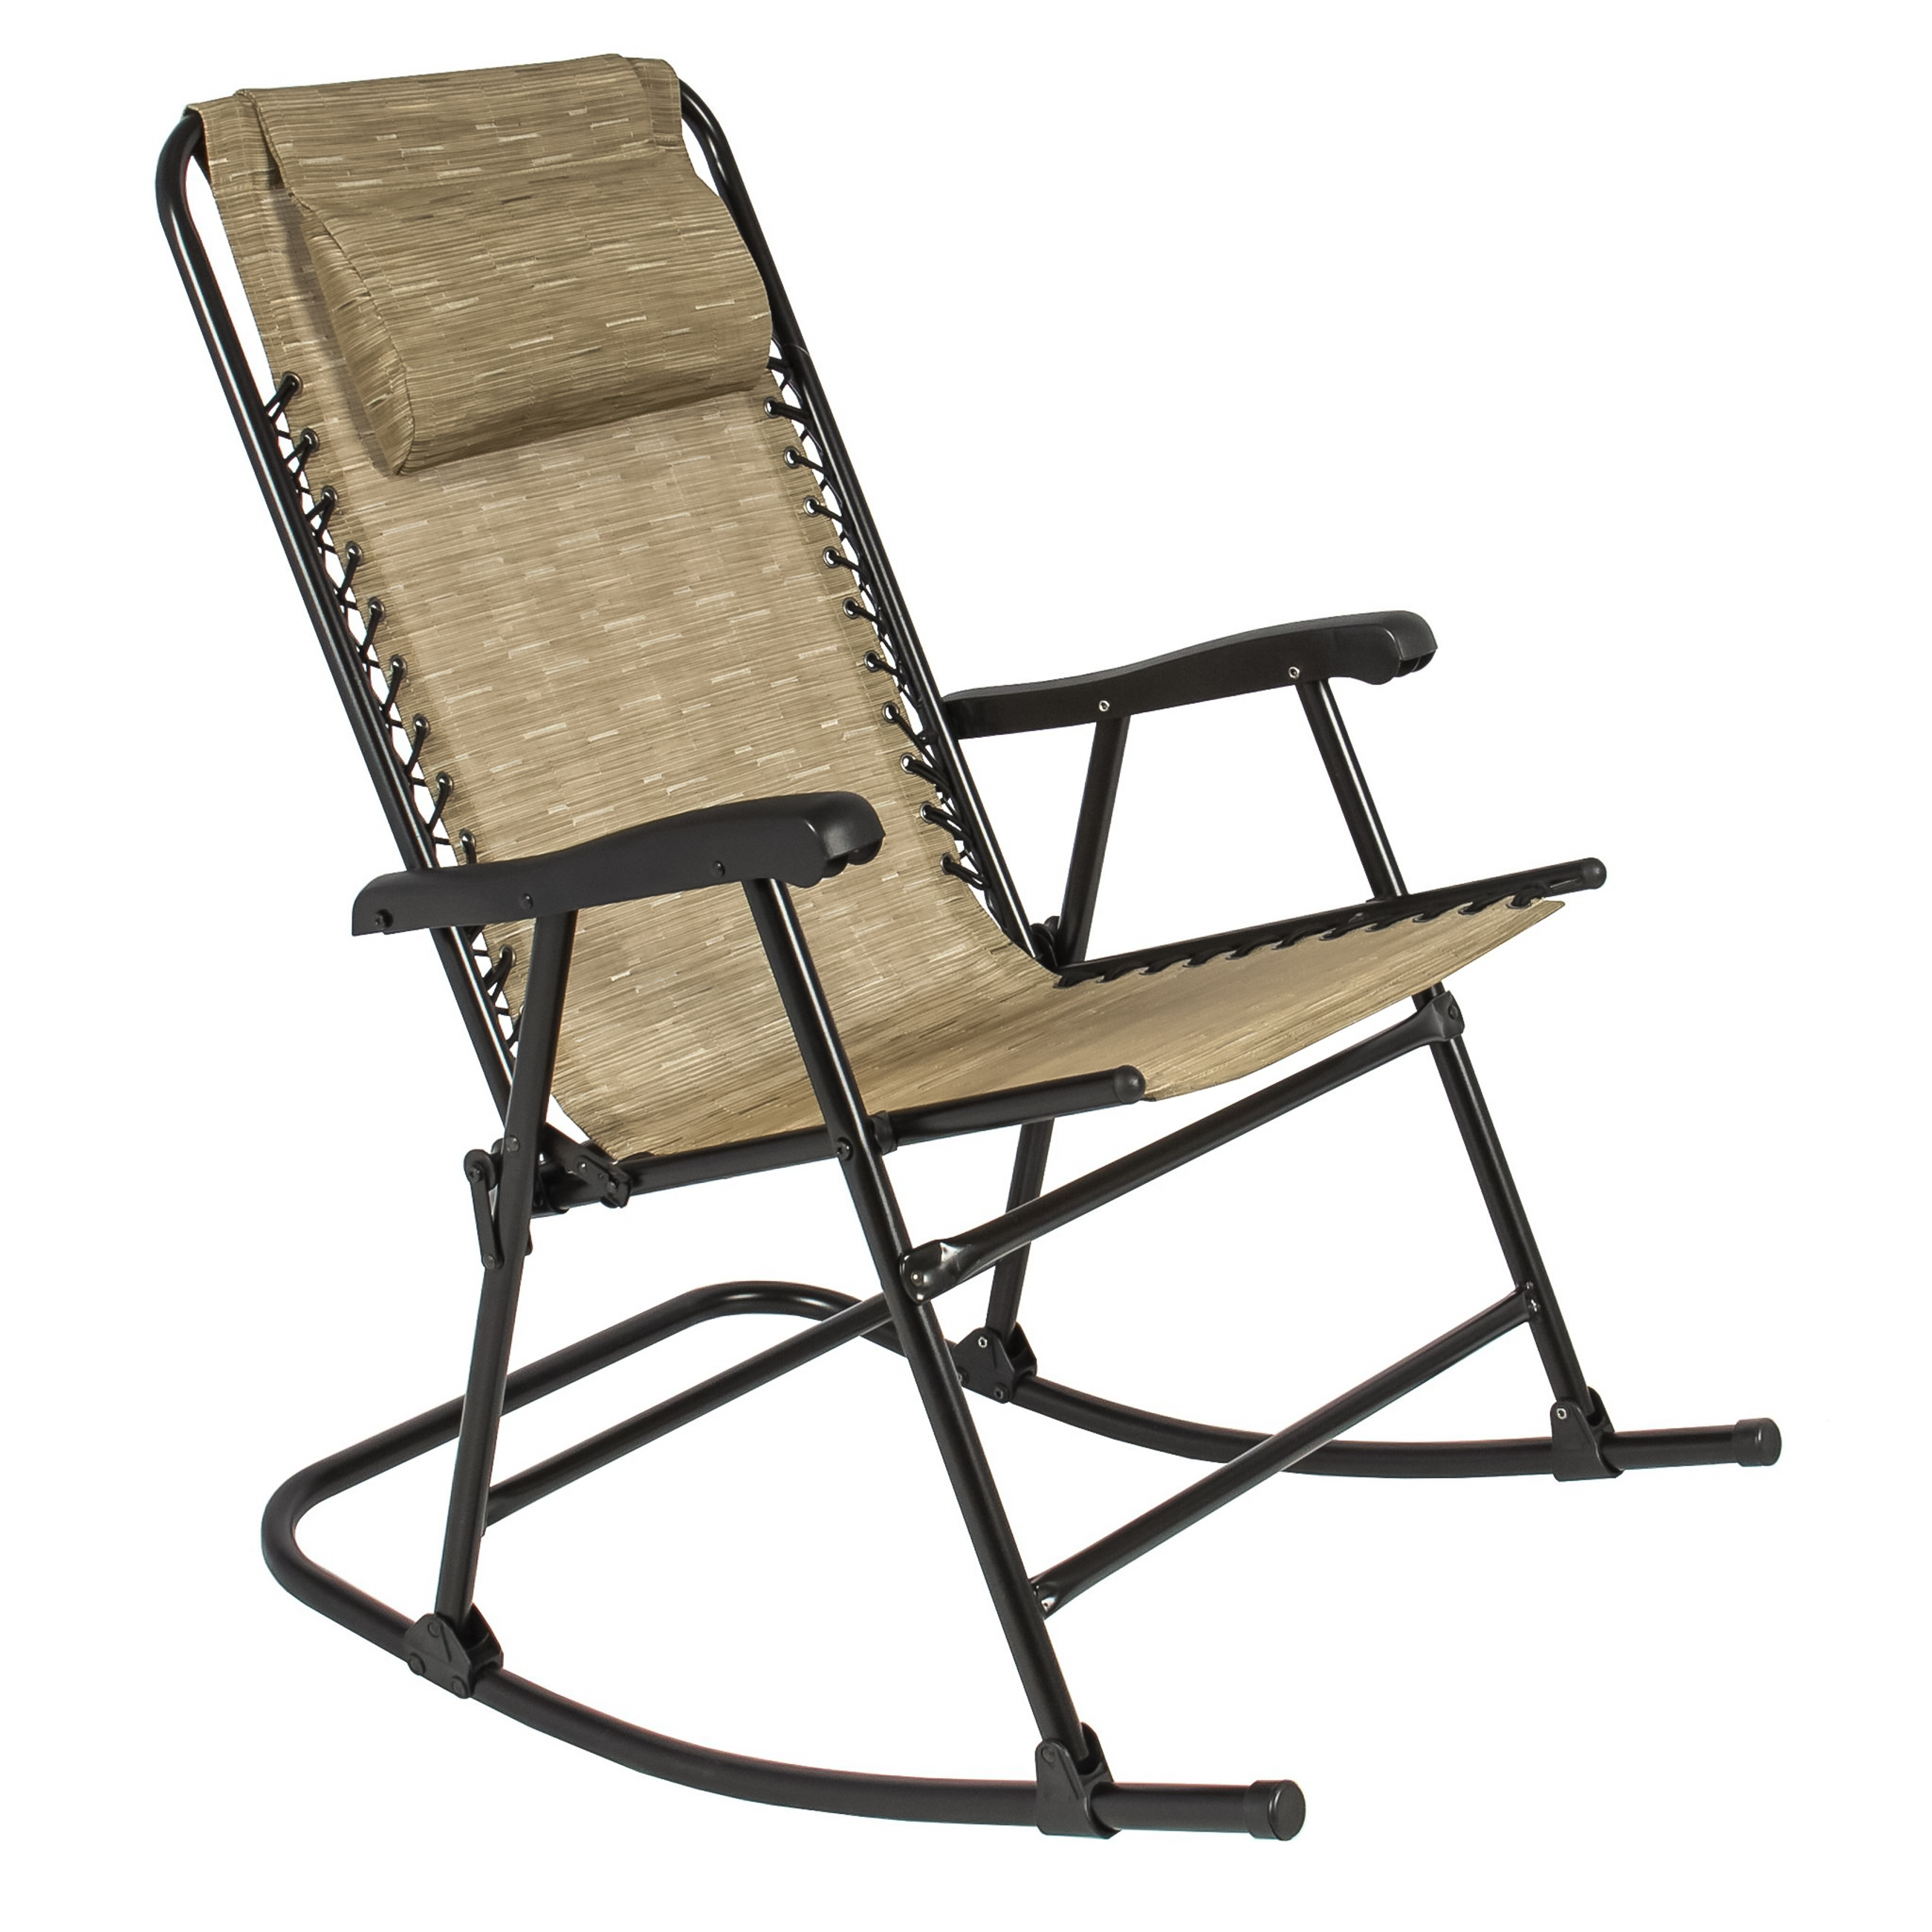 Best Choice Products Foldable Zero Gravity Rocking Patio Recliner Chair - Beige